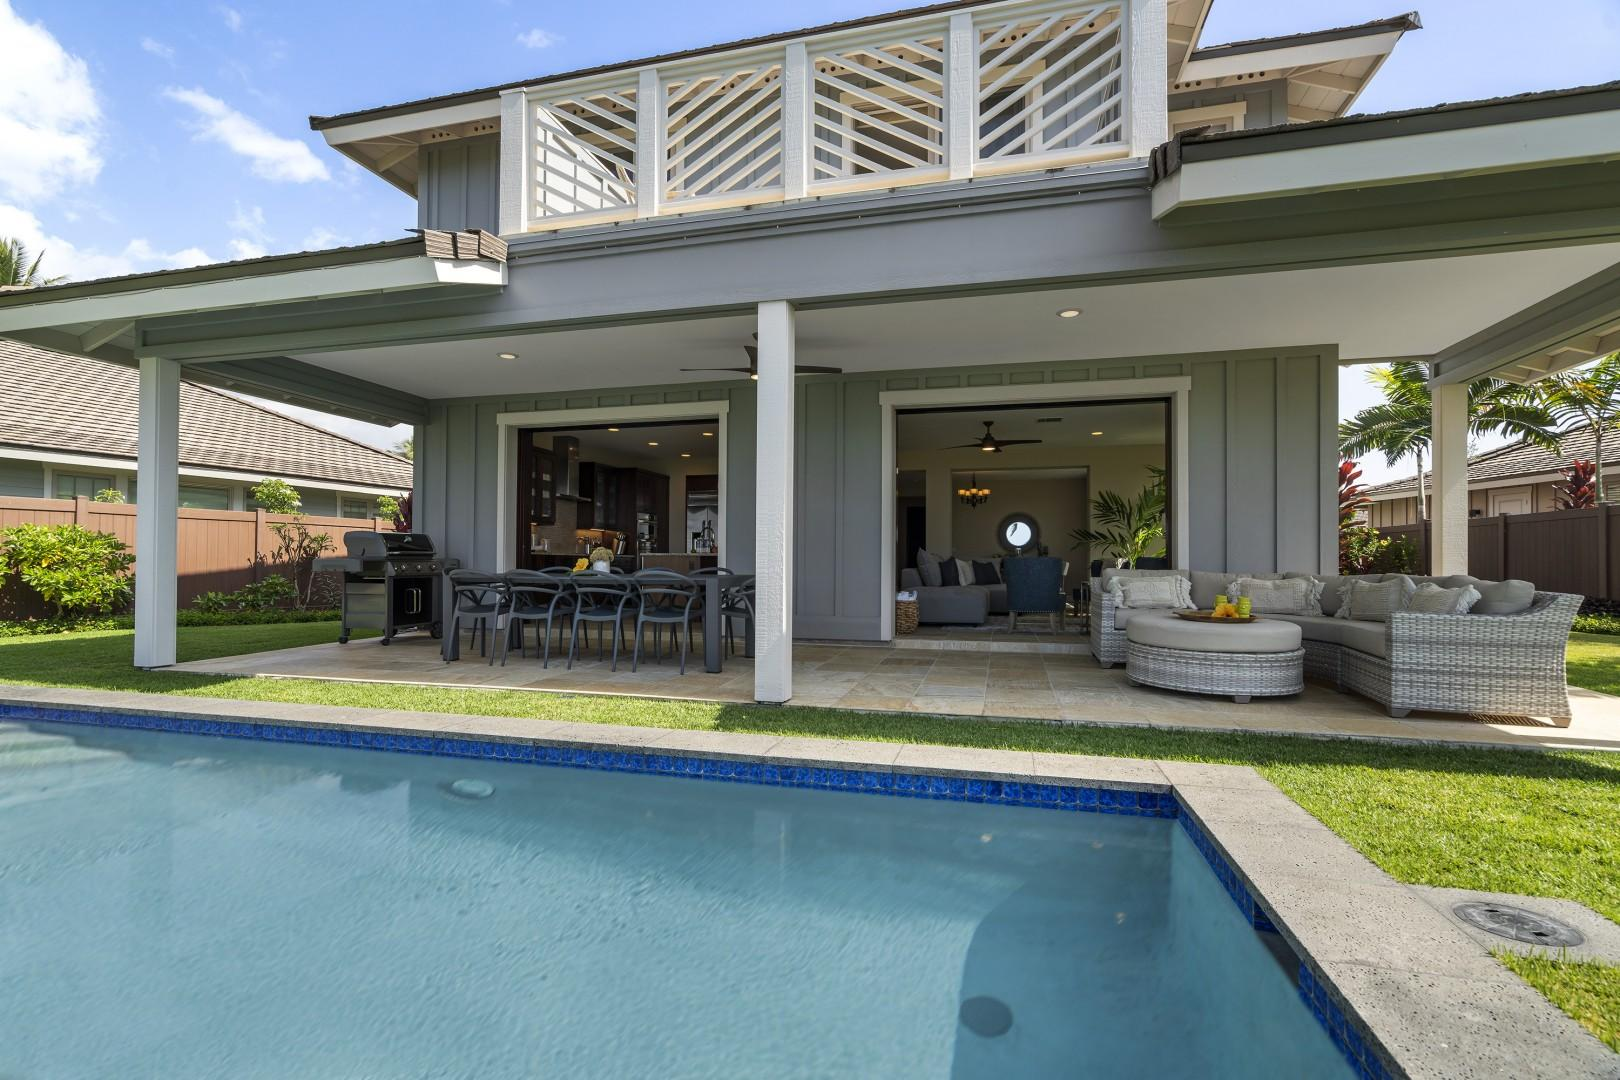 Showing the sheer size of the covered Lanai!